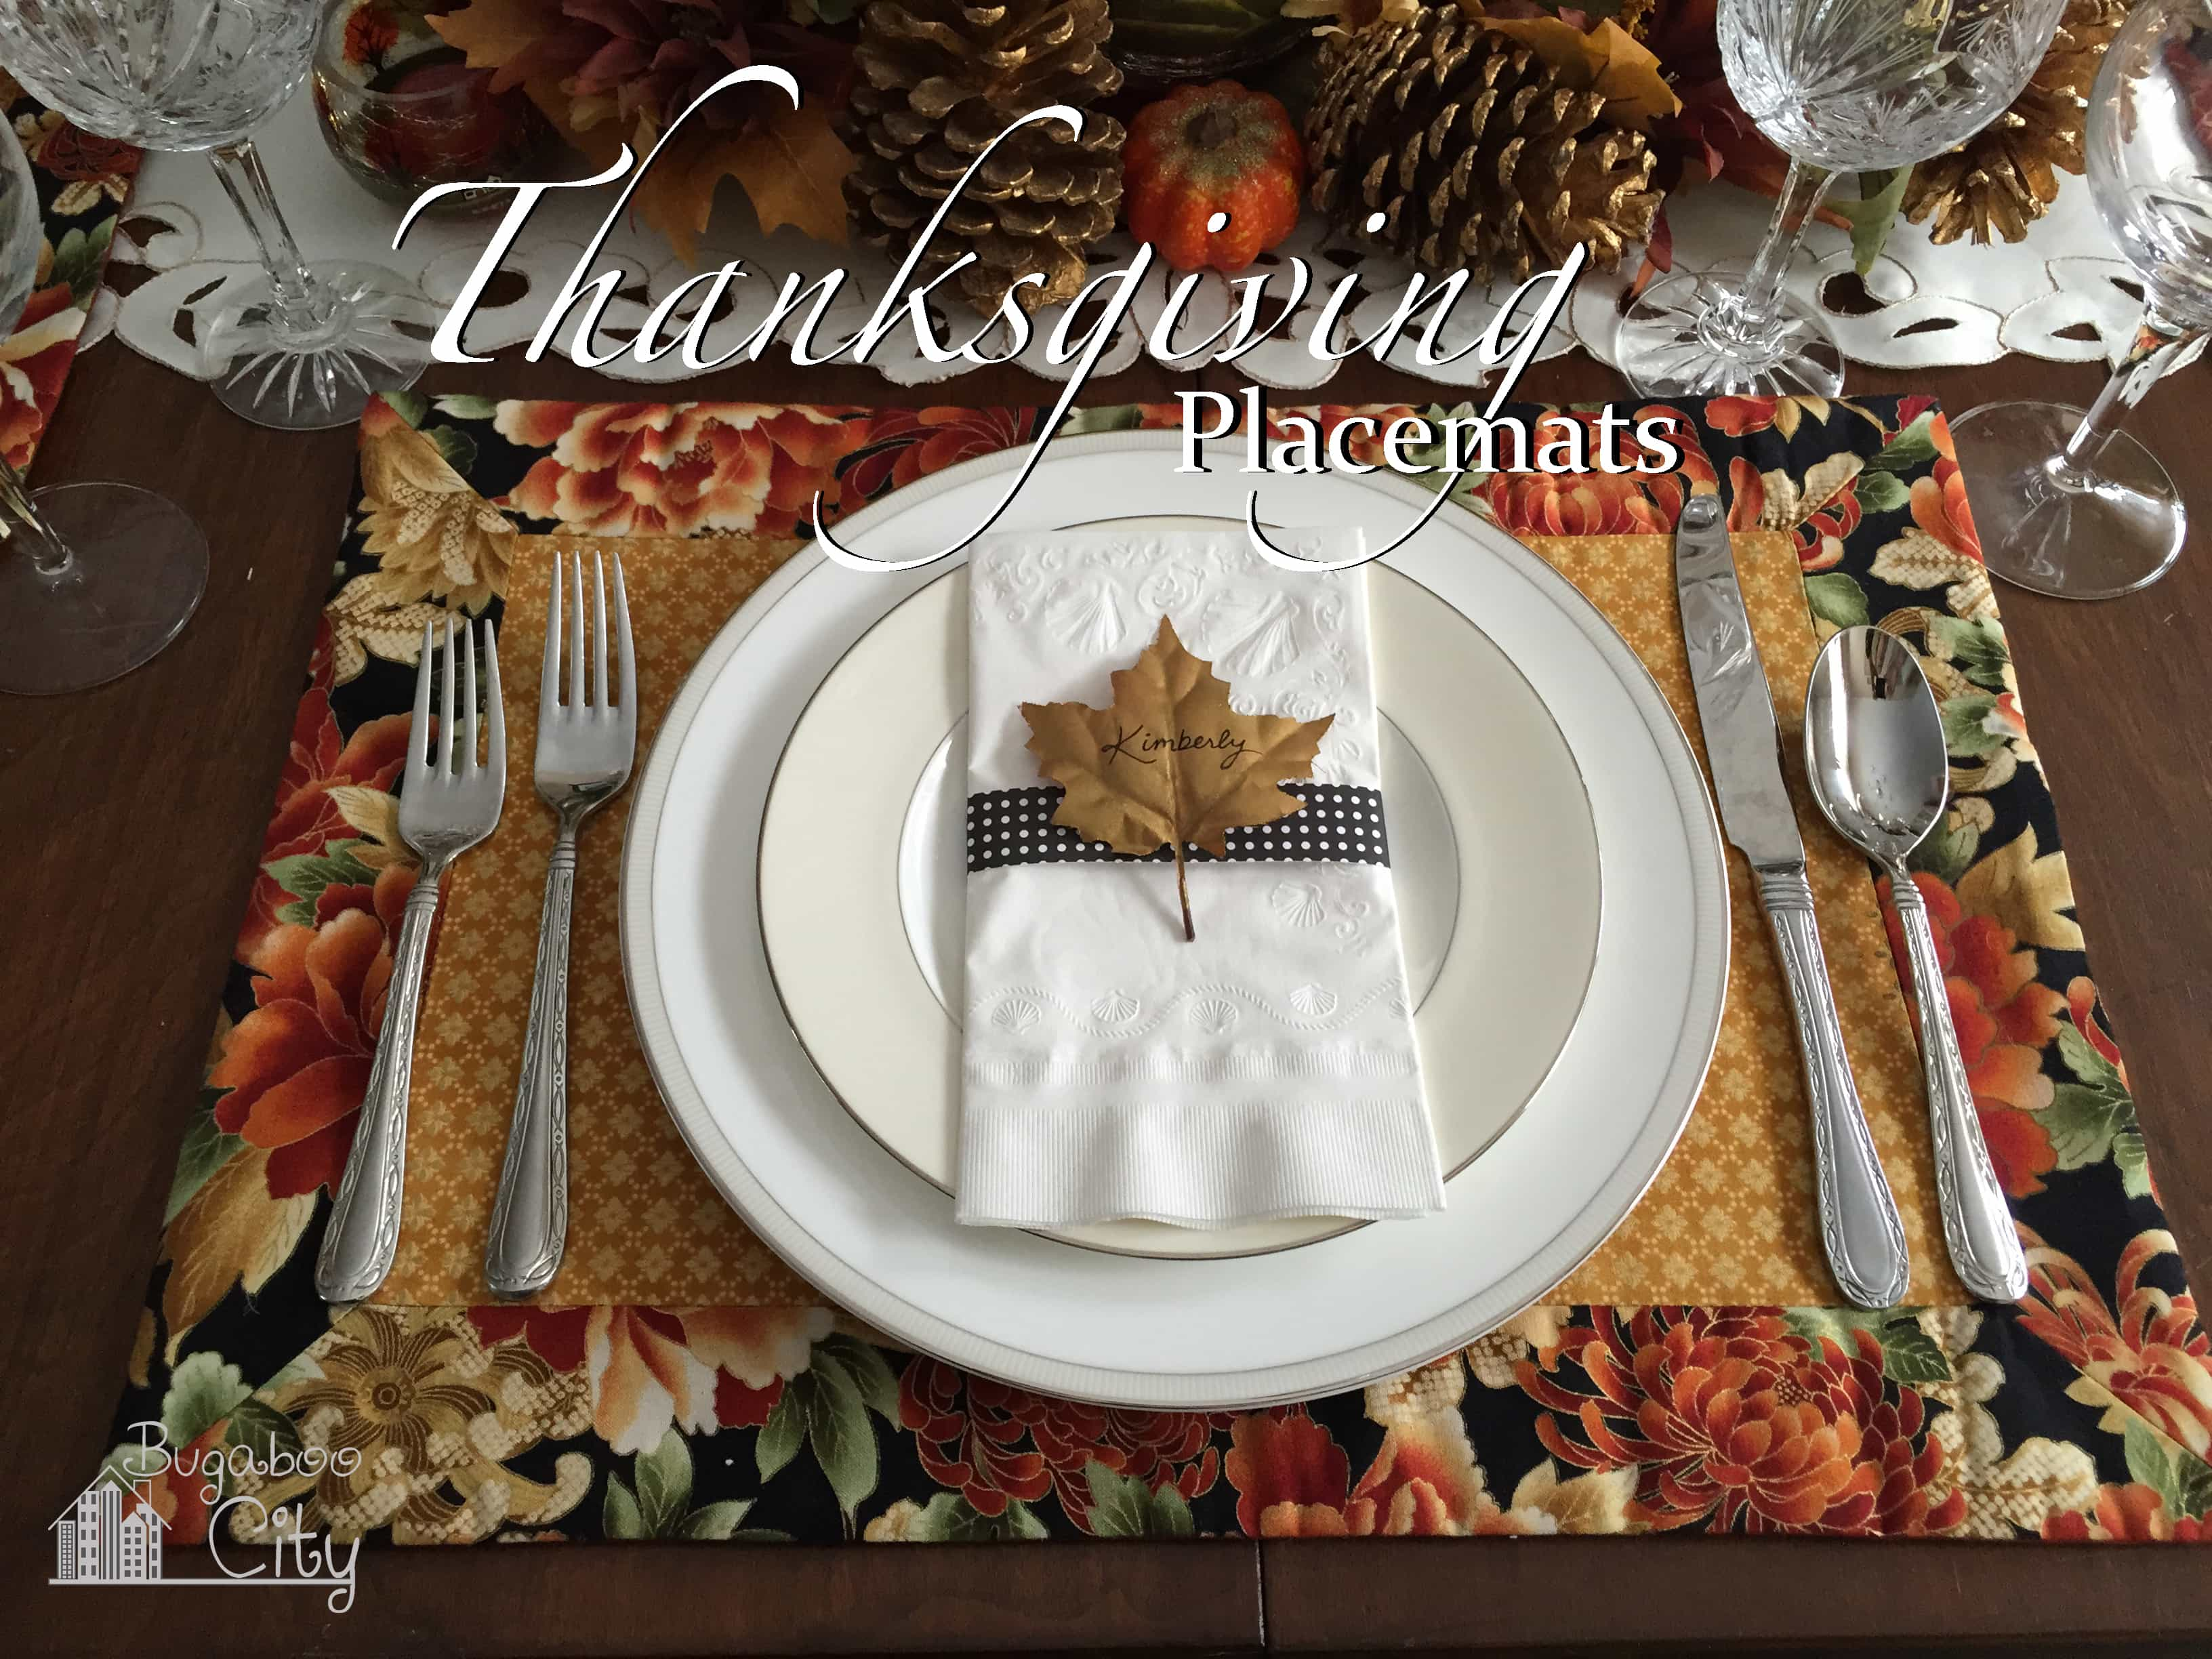 Thanksgiving placemat on a tabletop decorate for Thanksgiving.